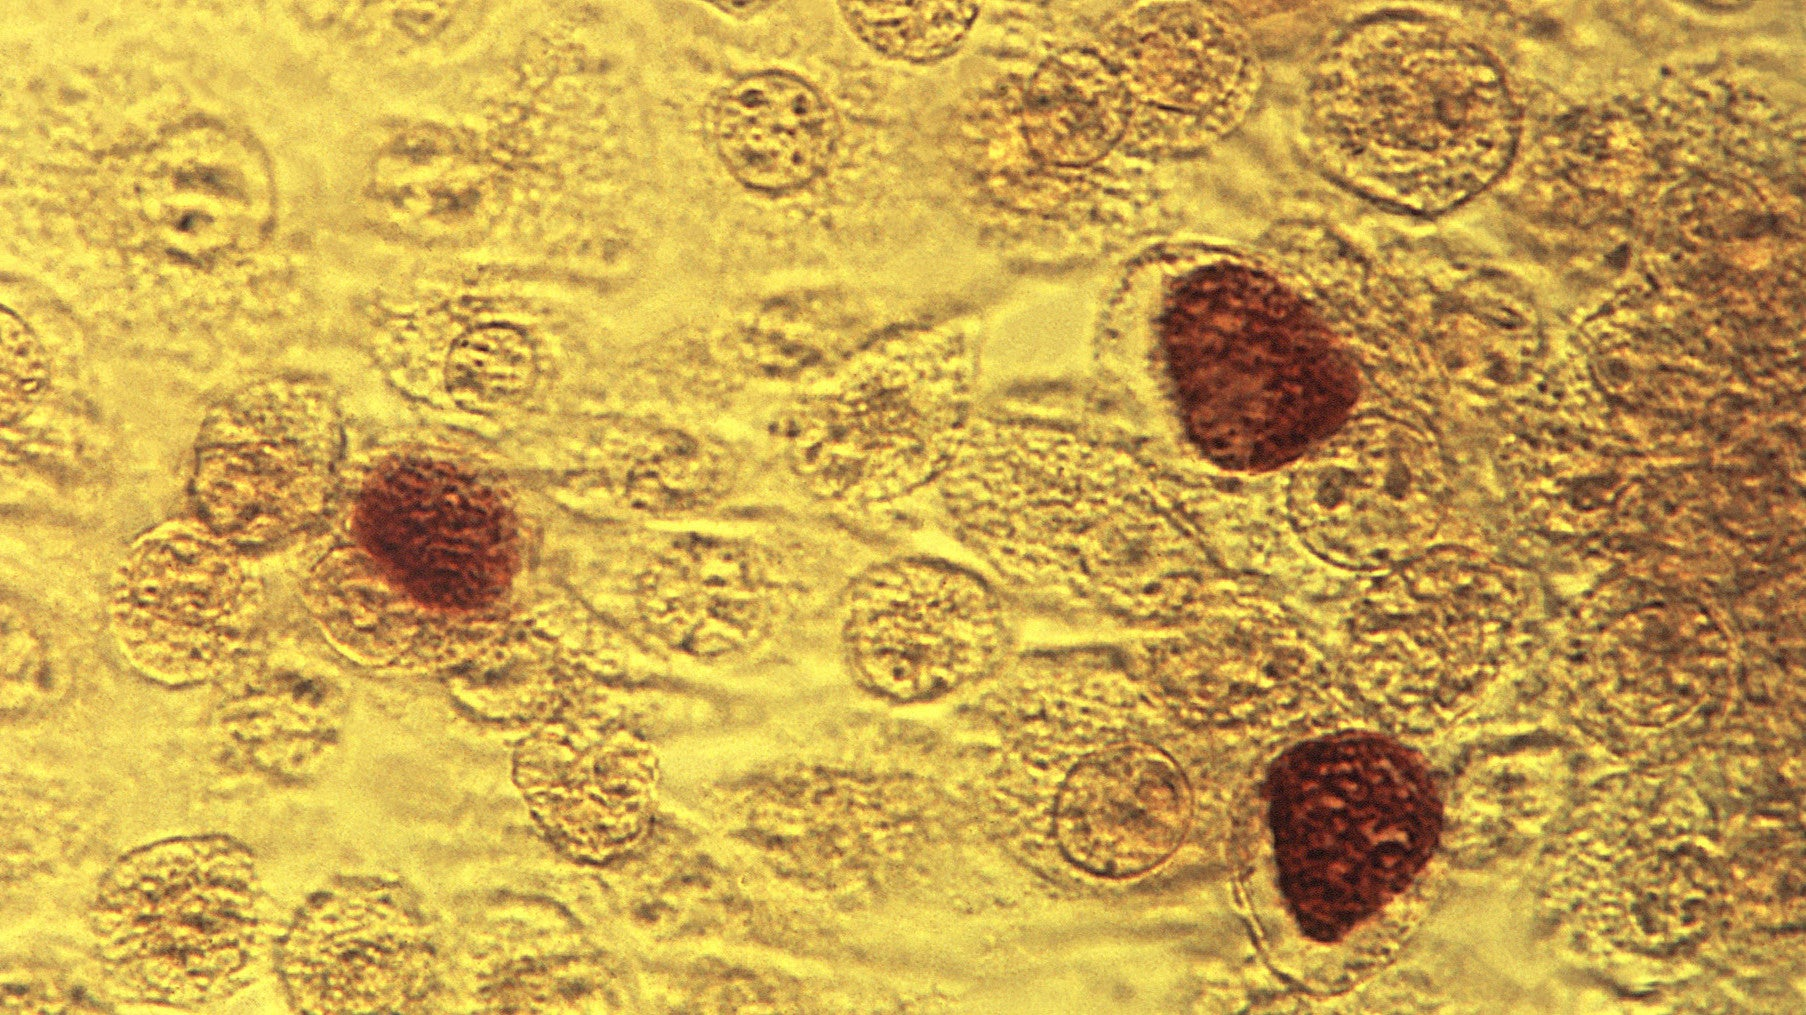 A Chlamydia Vaccine Shows Promise In Early Human Trial